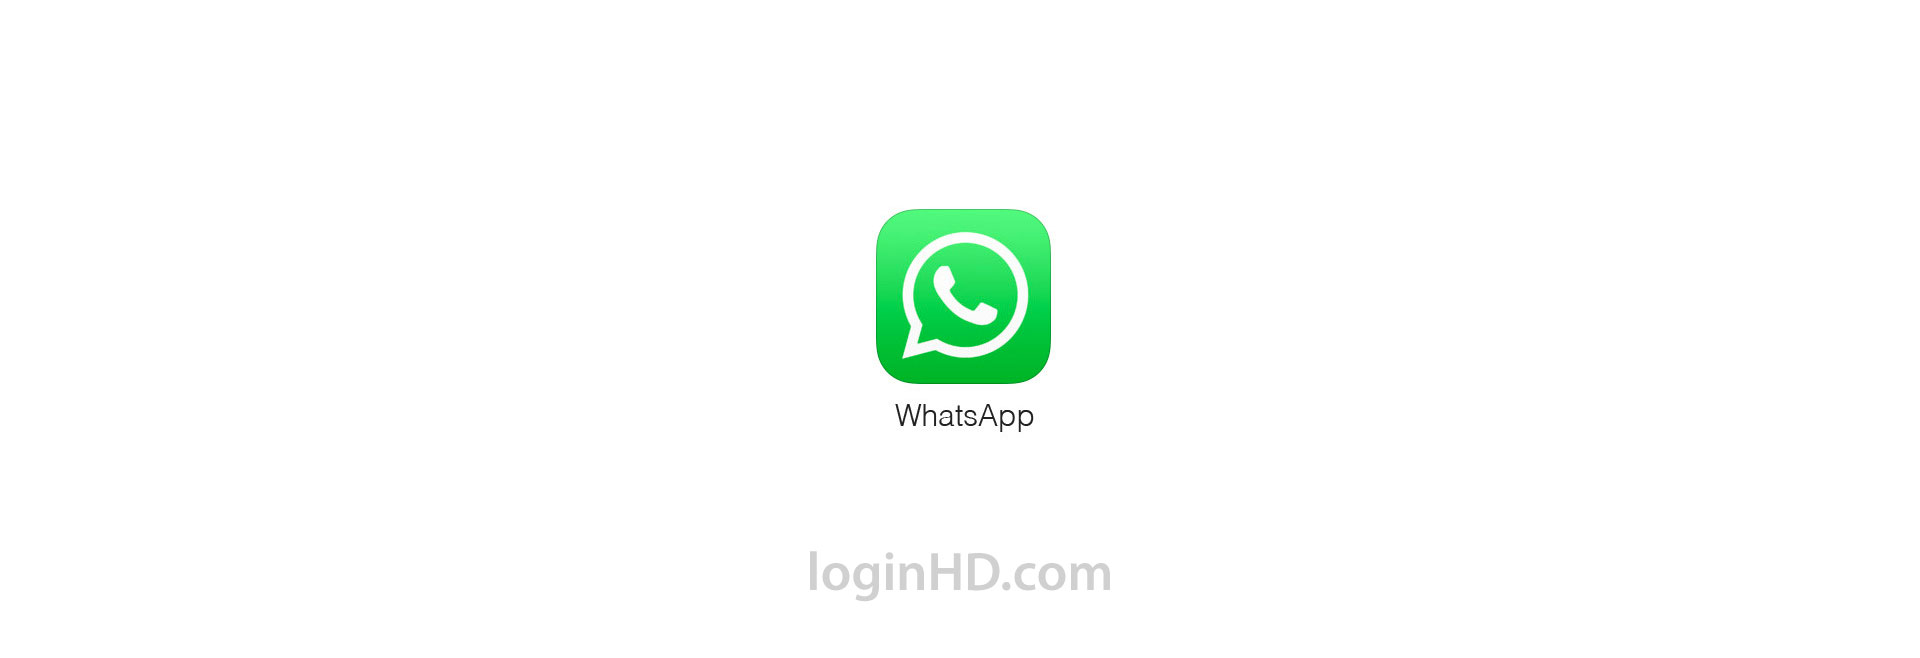 Whatsapp scammers protect